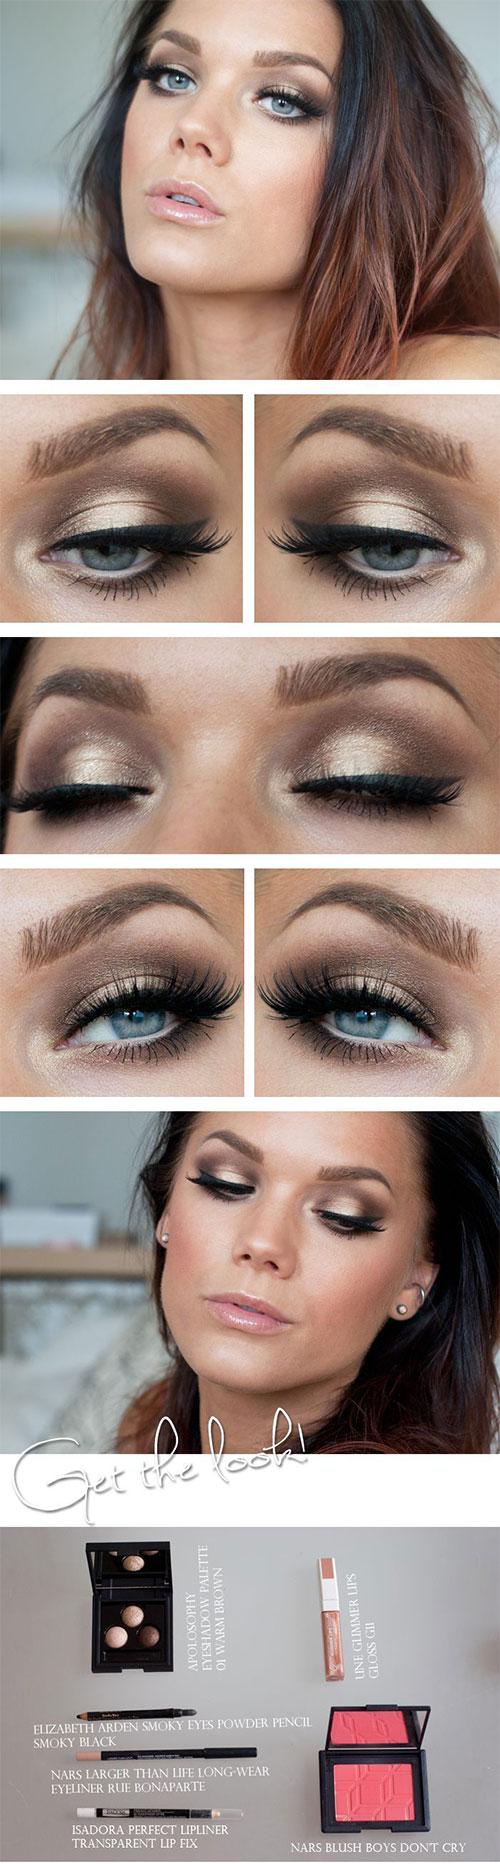 12-Easy-Simple-Fall-Makeup-Tutorials-For-Beginners-Learners-2015-13